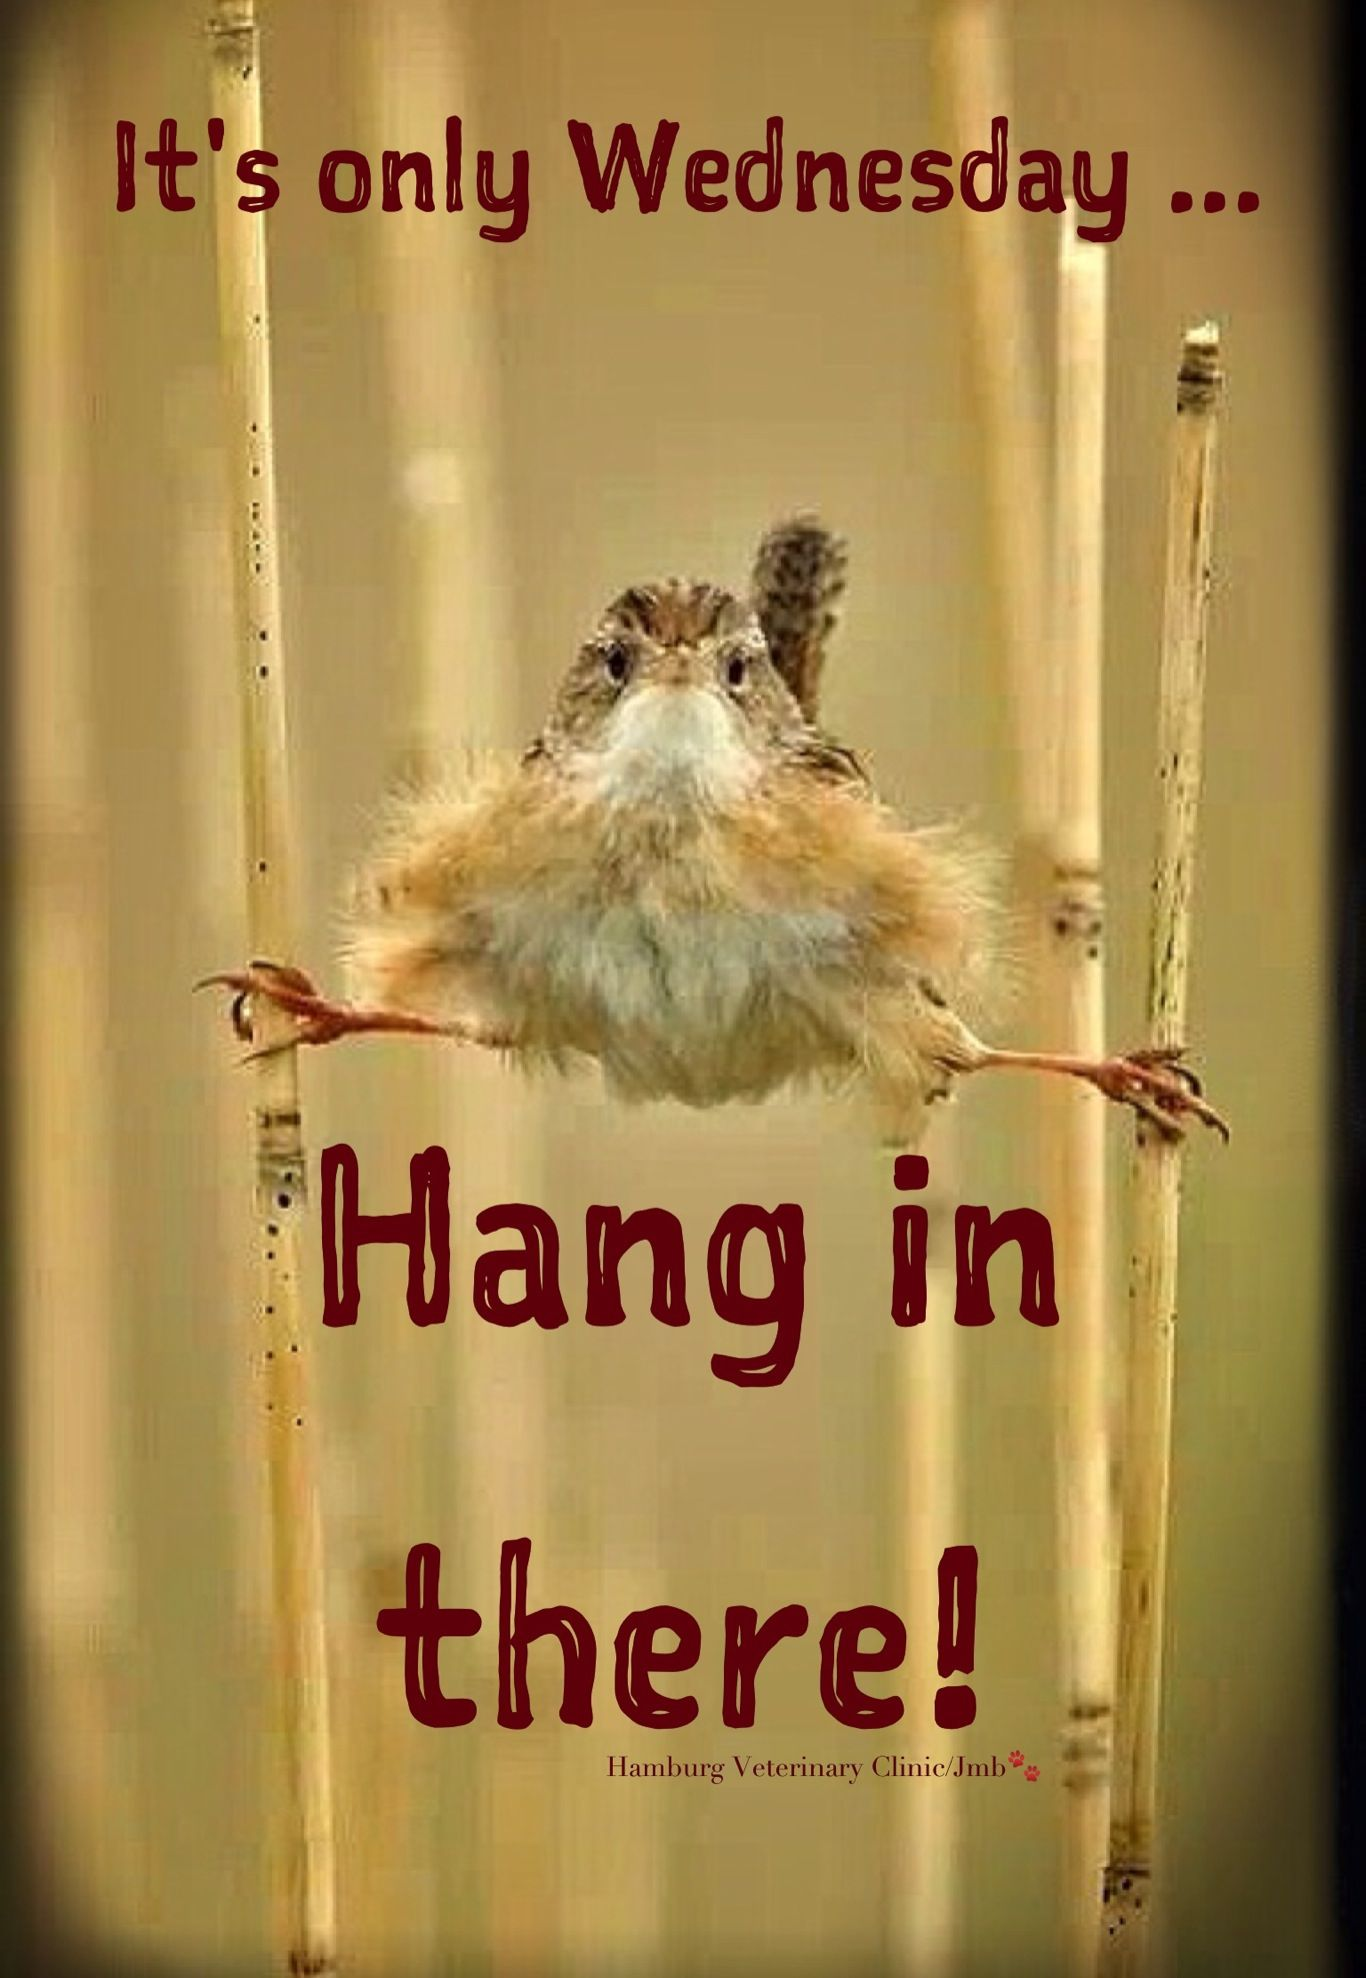 Wednesday Humor Animal funny Happy Wednesday! Hang in